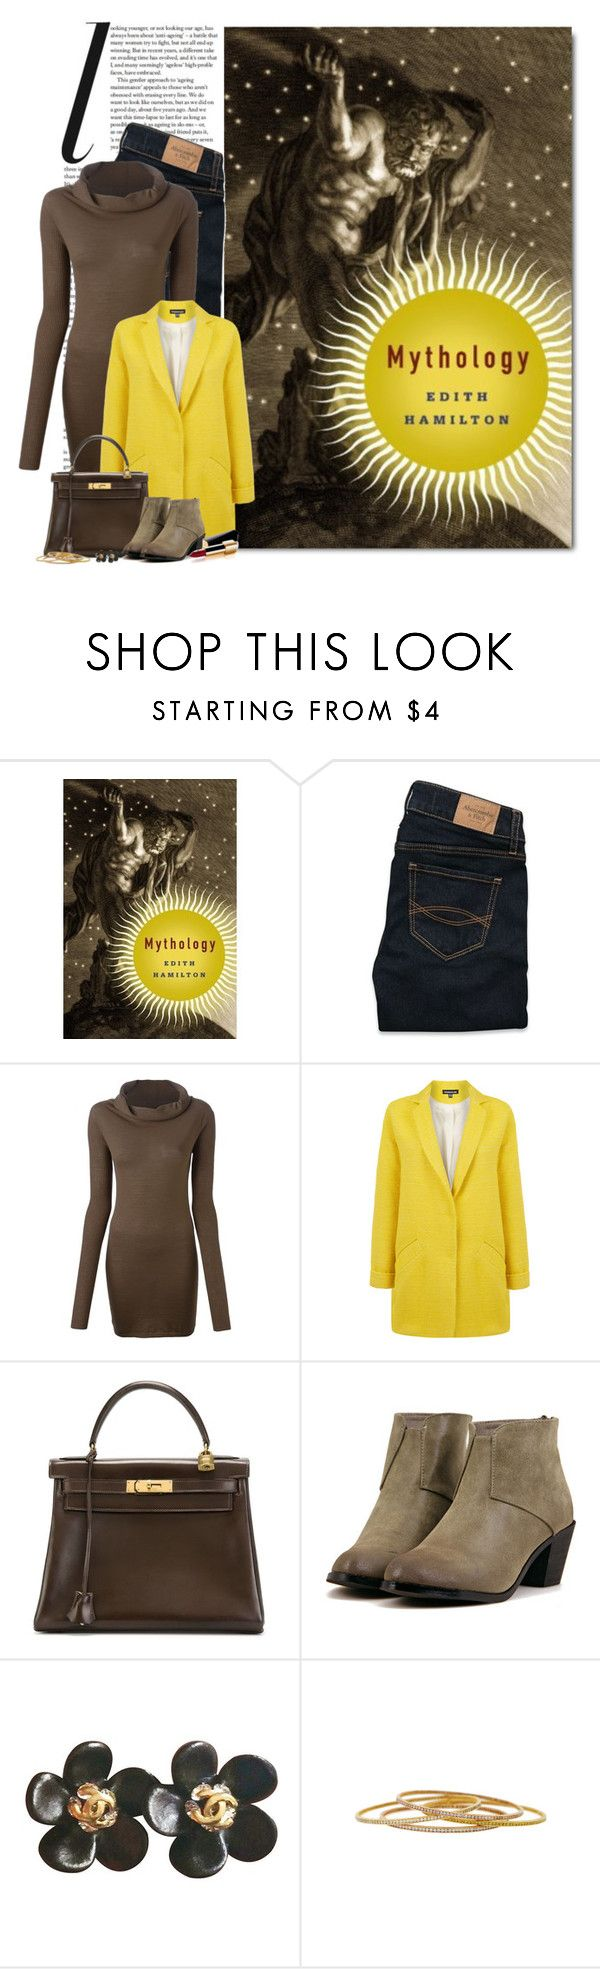 """Mythology by Edith Hamilton"" by ameve ❤ liked on Polyvore featuring Abercrombie & Fitch, Rick Owens, Warehouse, Hermès and Chanel"